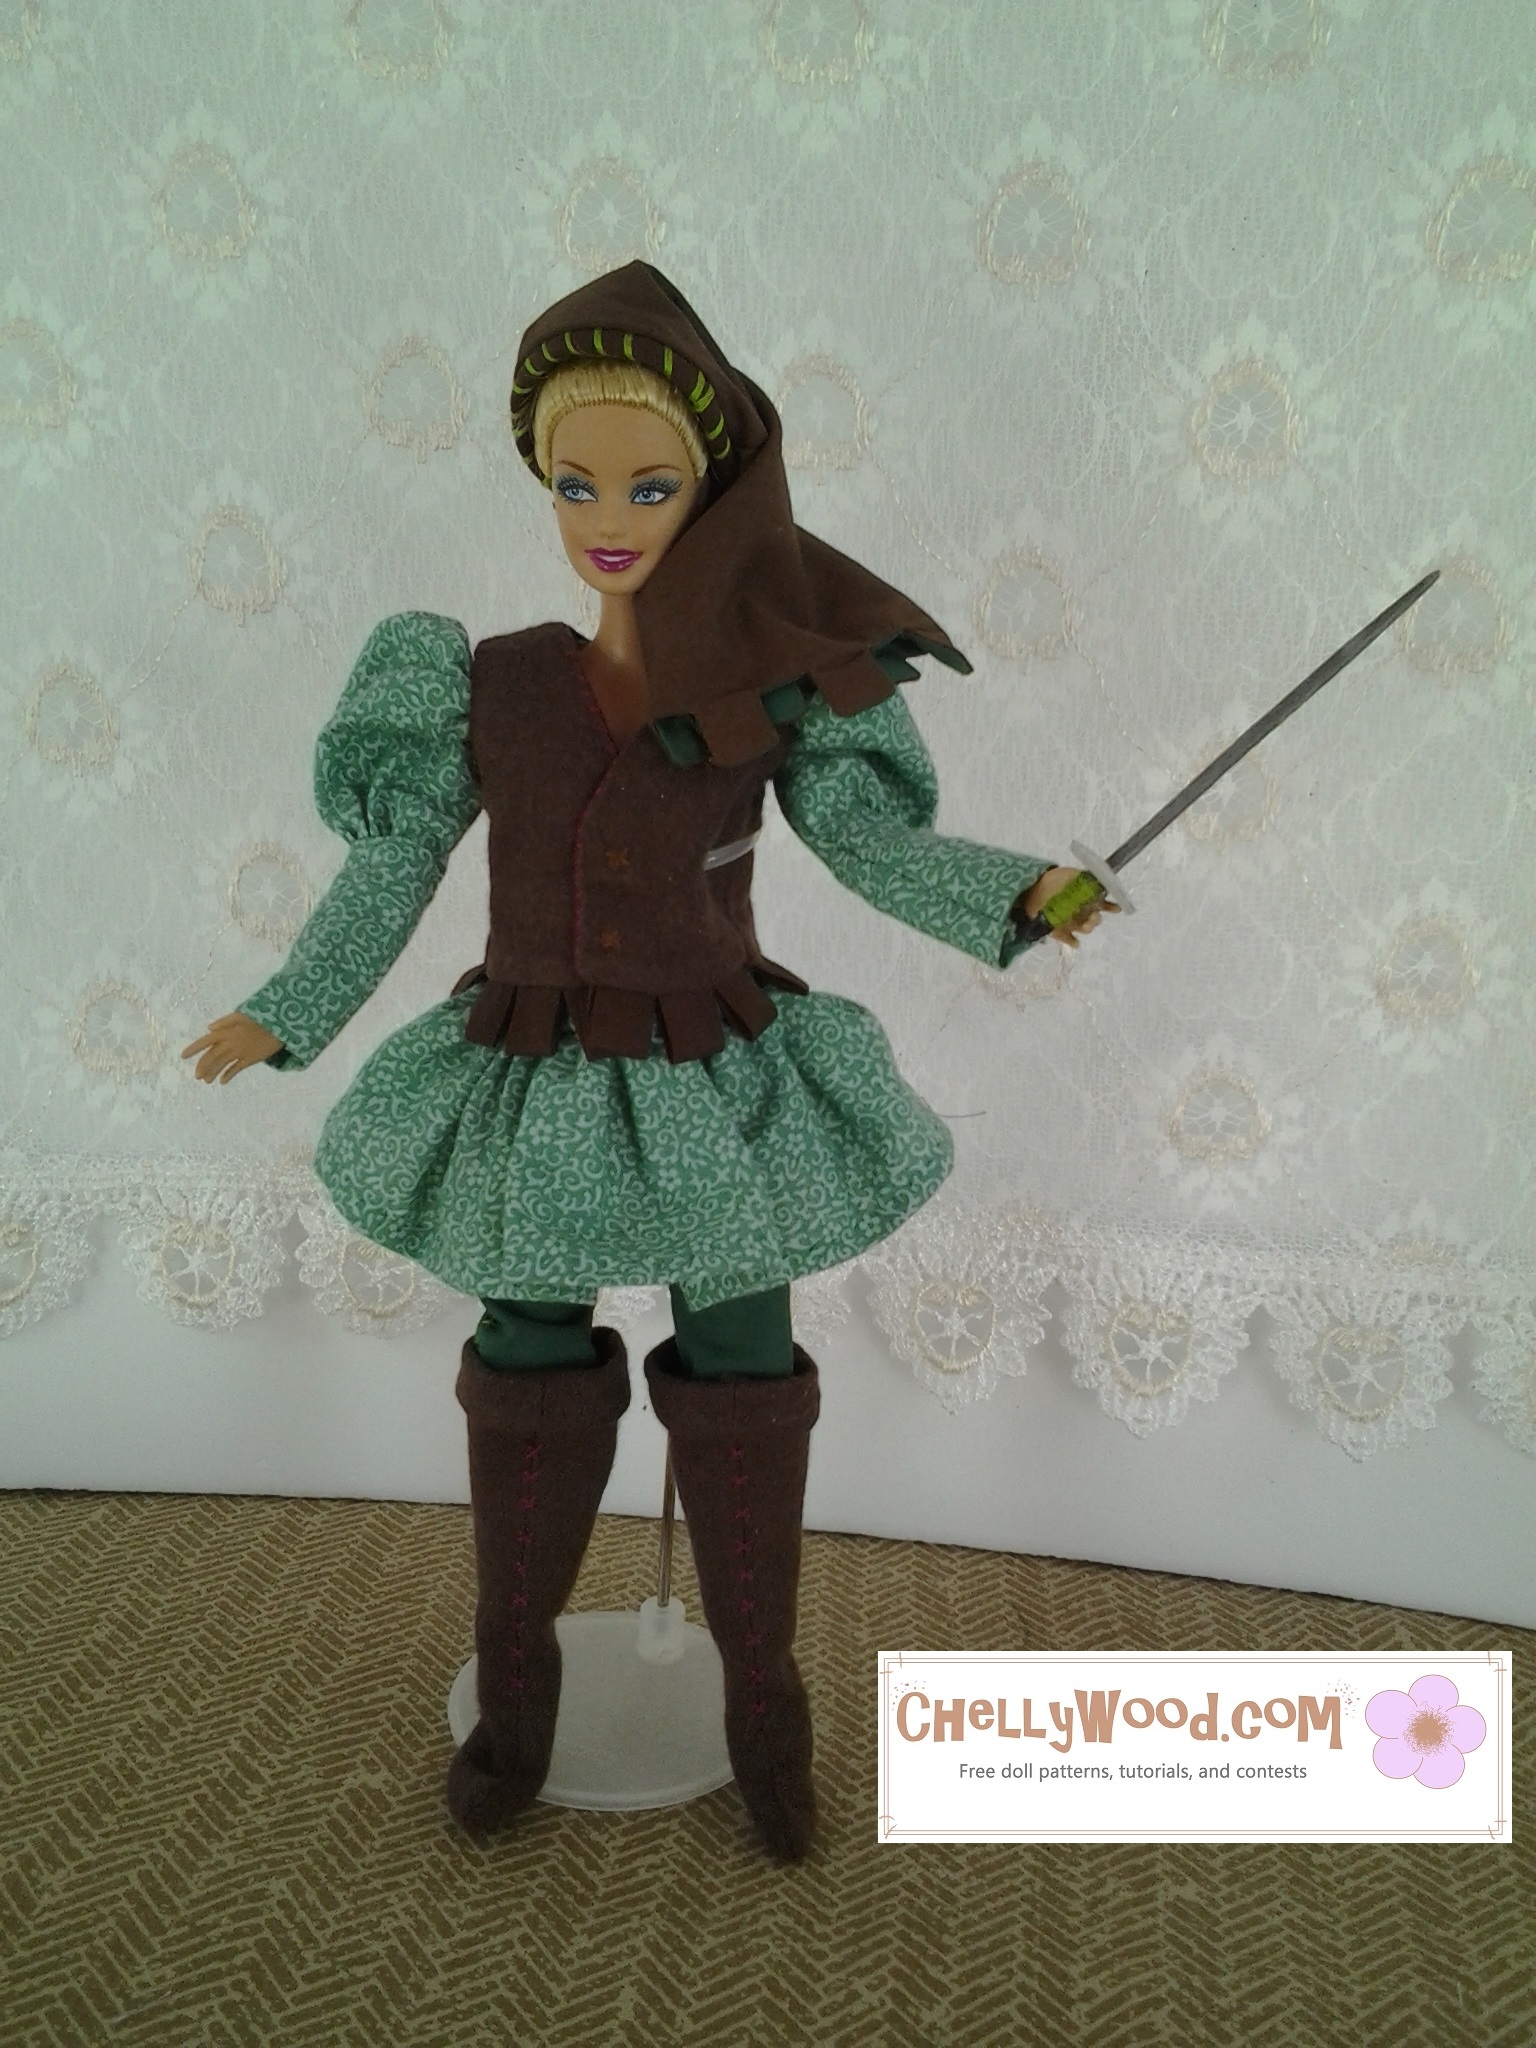 Here we see a Barbie dressed in Renaissance garb and wielding a sword. Her hat is a headband with a cotton frame draping down over her head and shoulder. She has a puff-sleeve tunic with skirting, and over the top of that, her doublet vest has squared edging below the waist. She wears embroidered trousers and knee-high flannel boots.